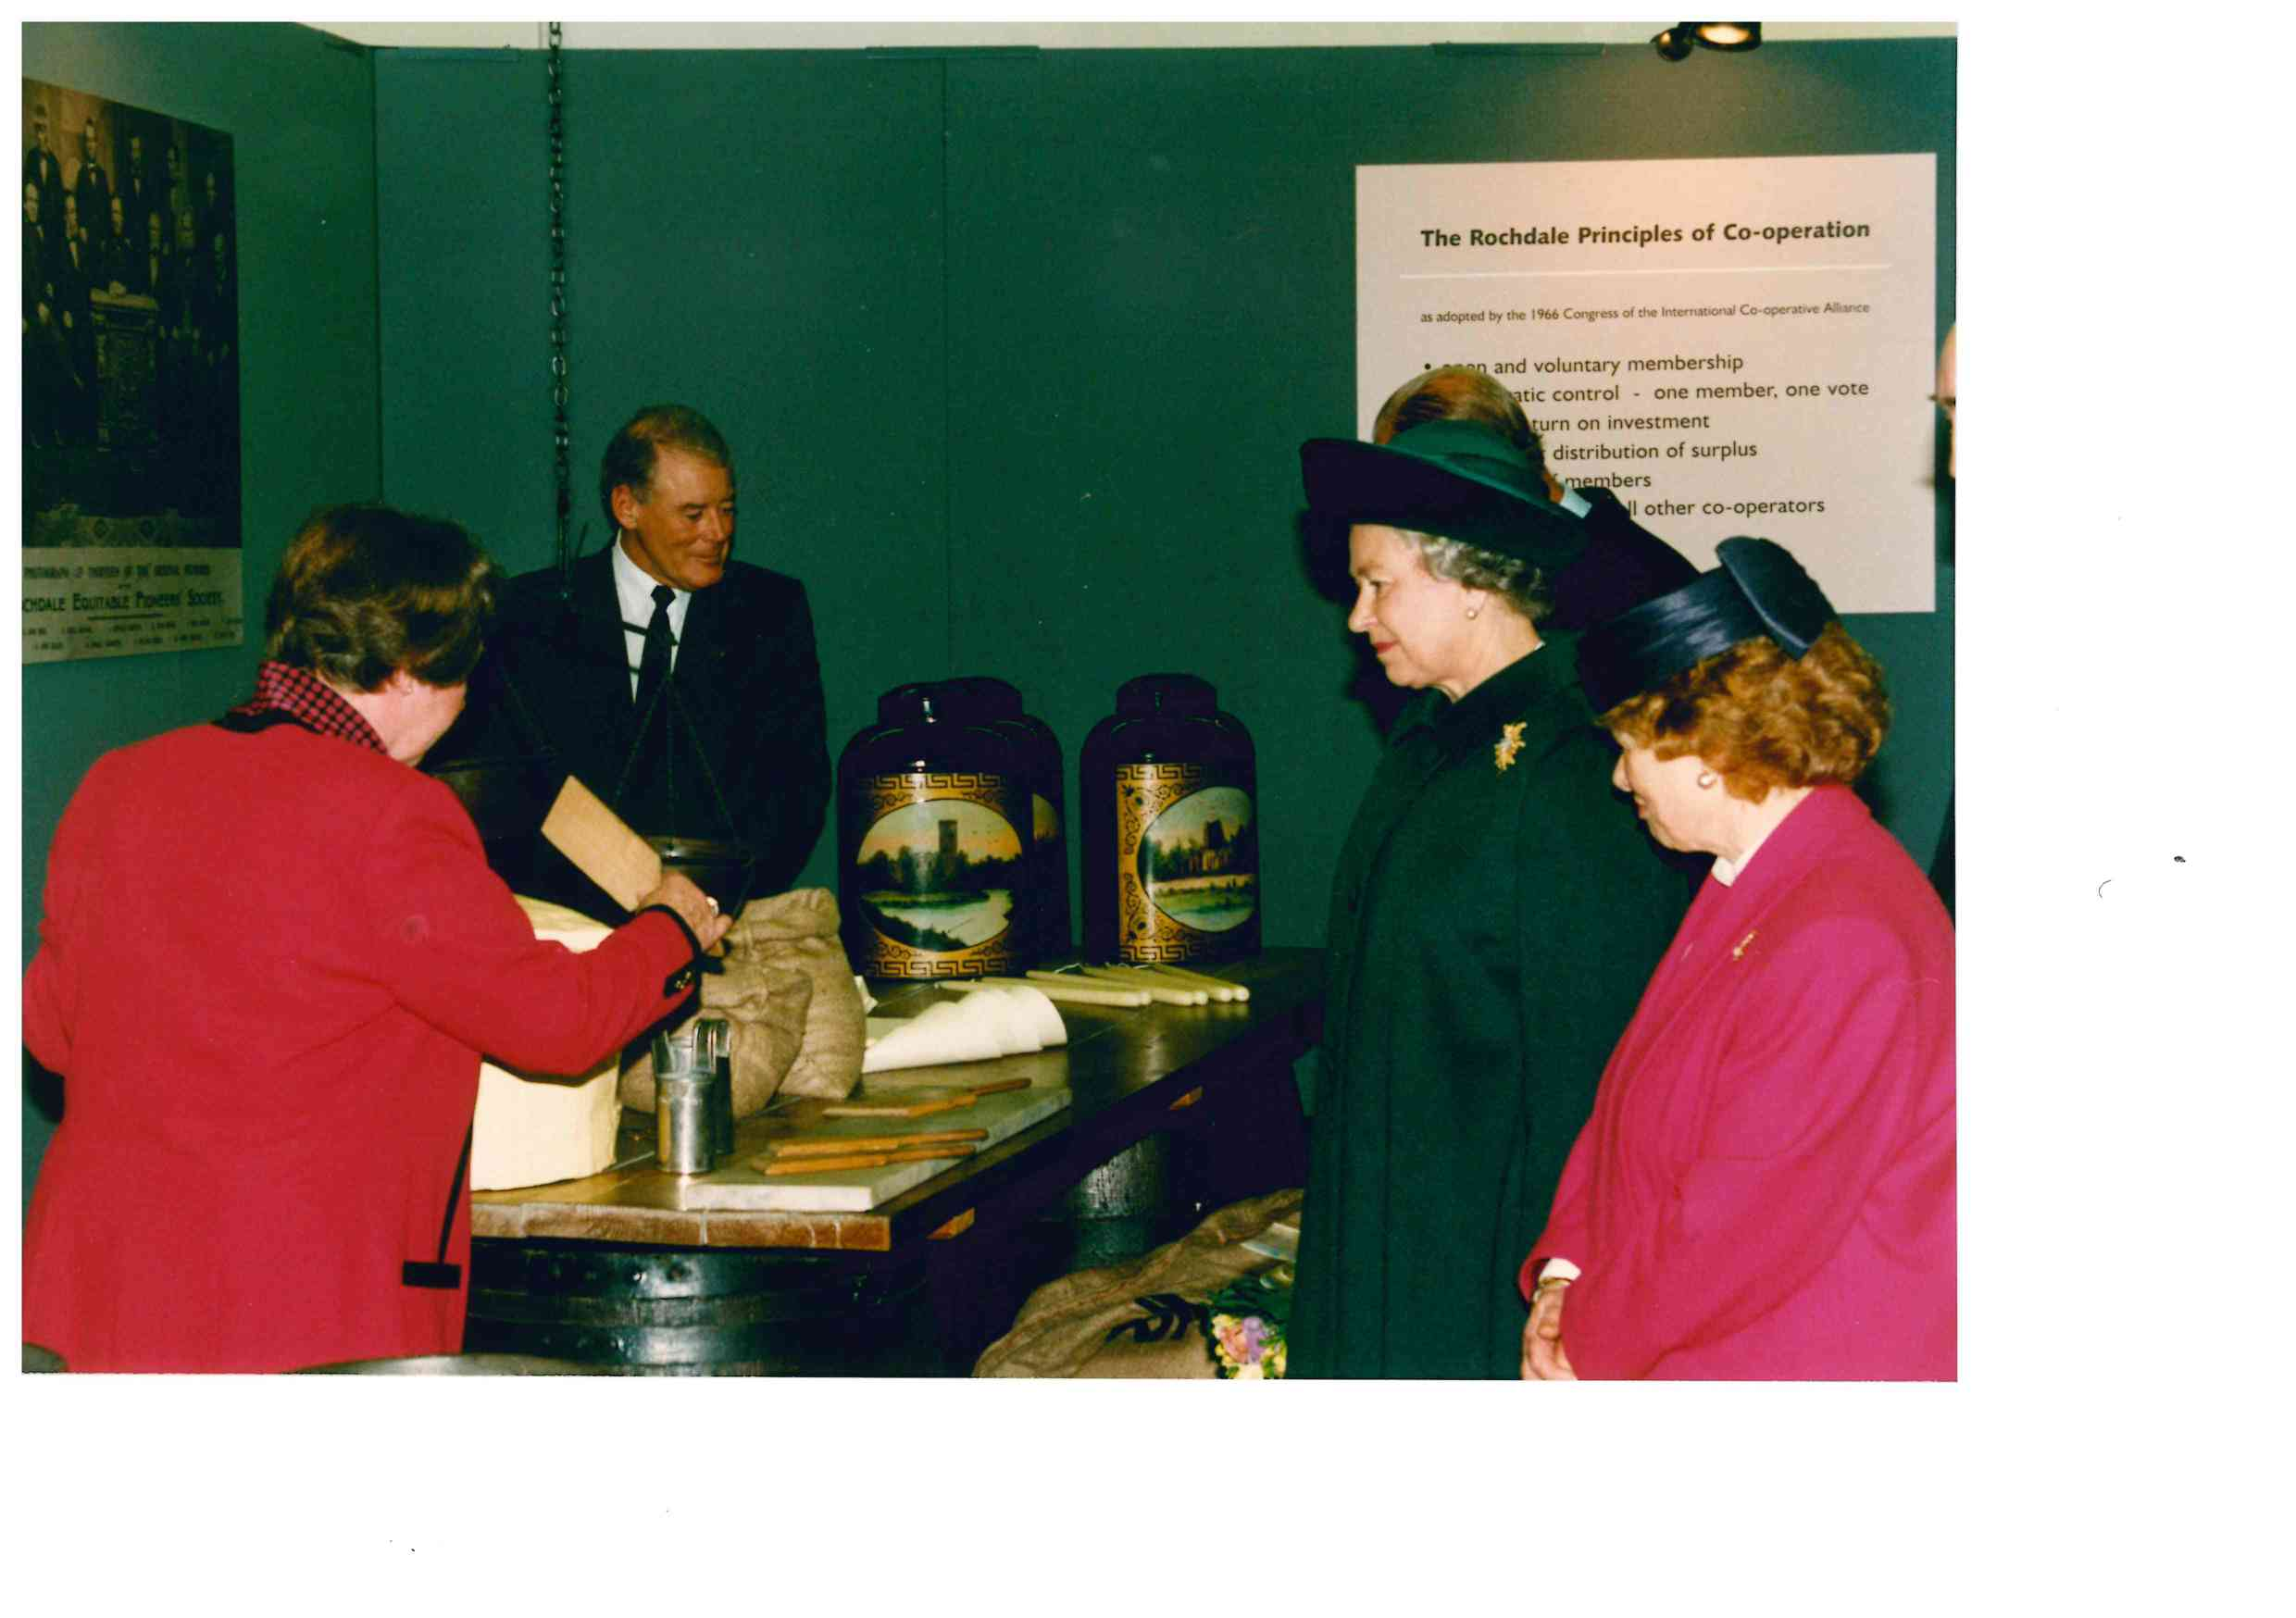 The Queen viewing the exhibition